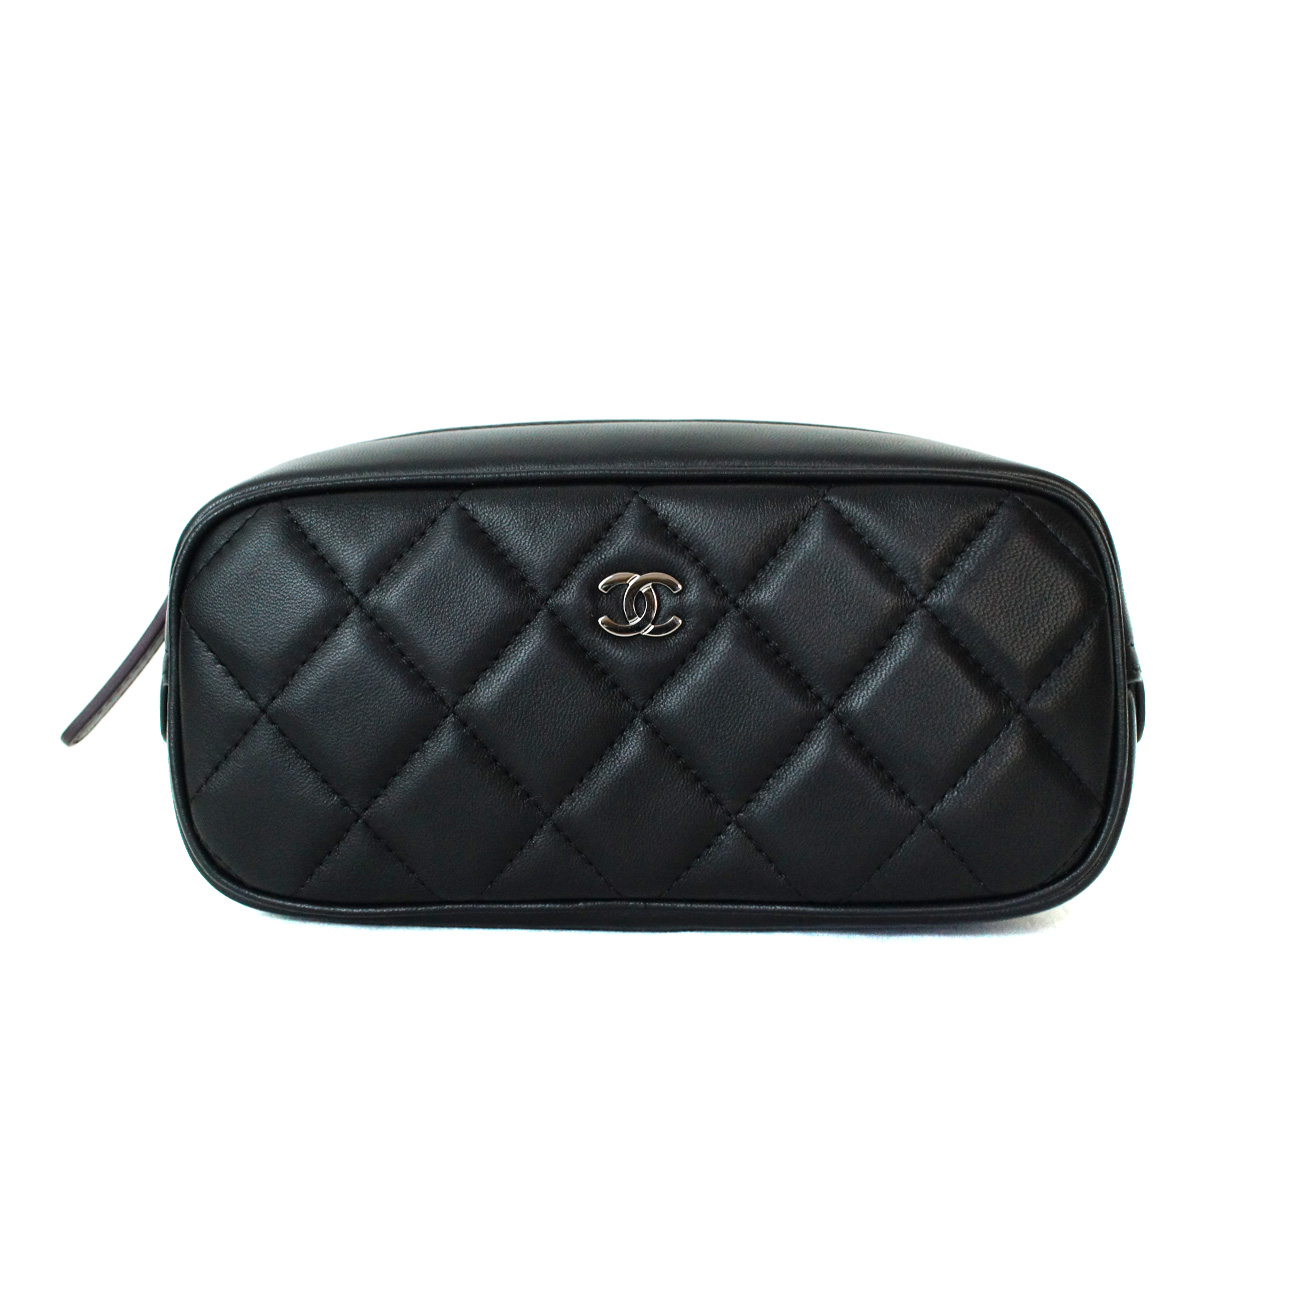 5983bc7dfd6f CHANEL Cosmetic Pouch Quilted Black Lambskin Leather Silver CC, New, 100%  authentic guaranteed.